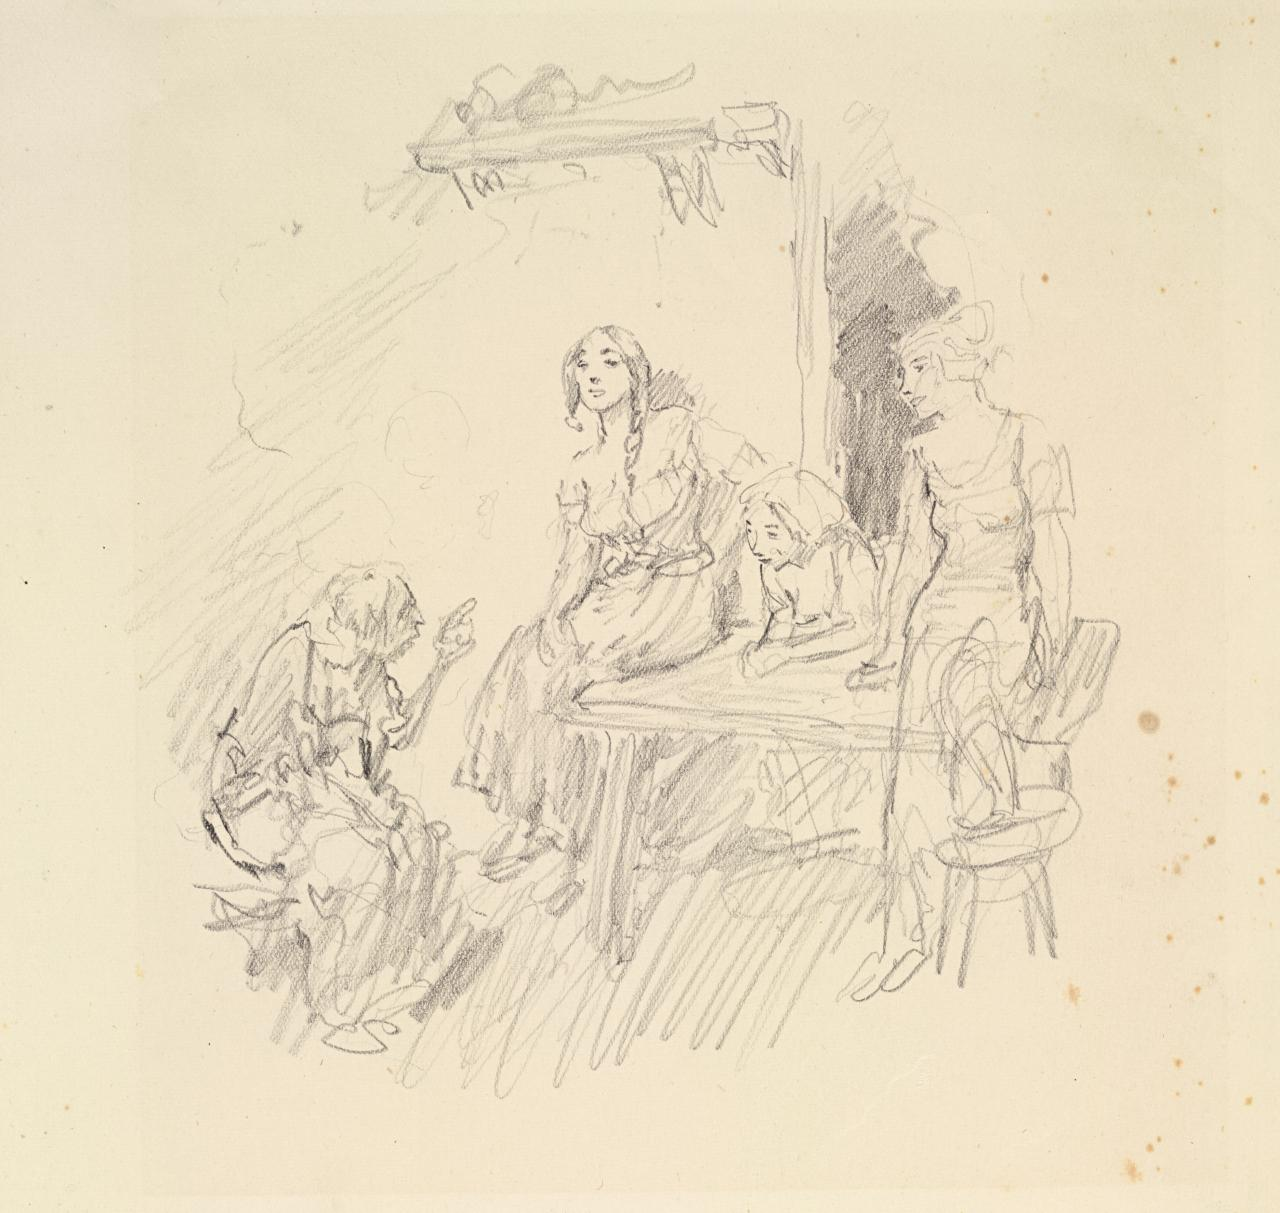 Figure study for illustration to the poem of Villon